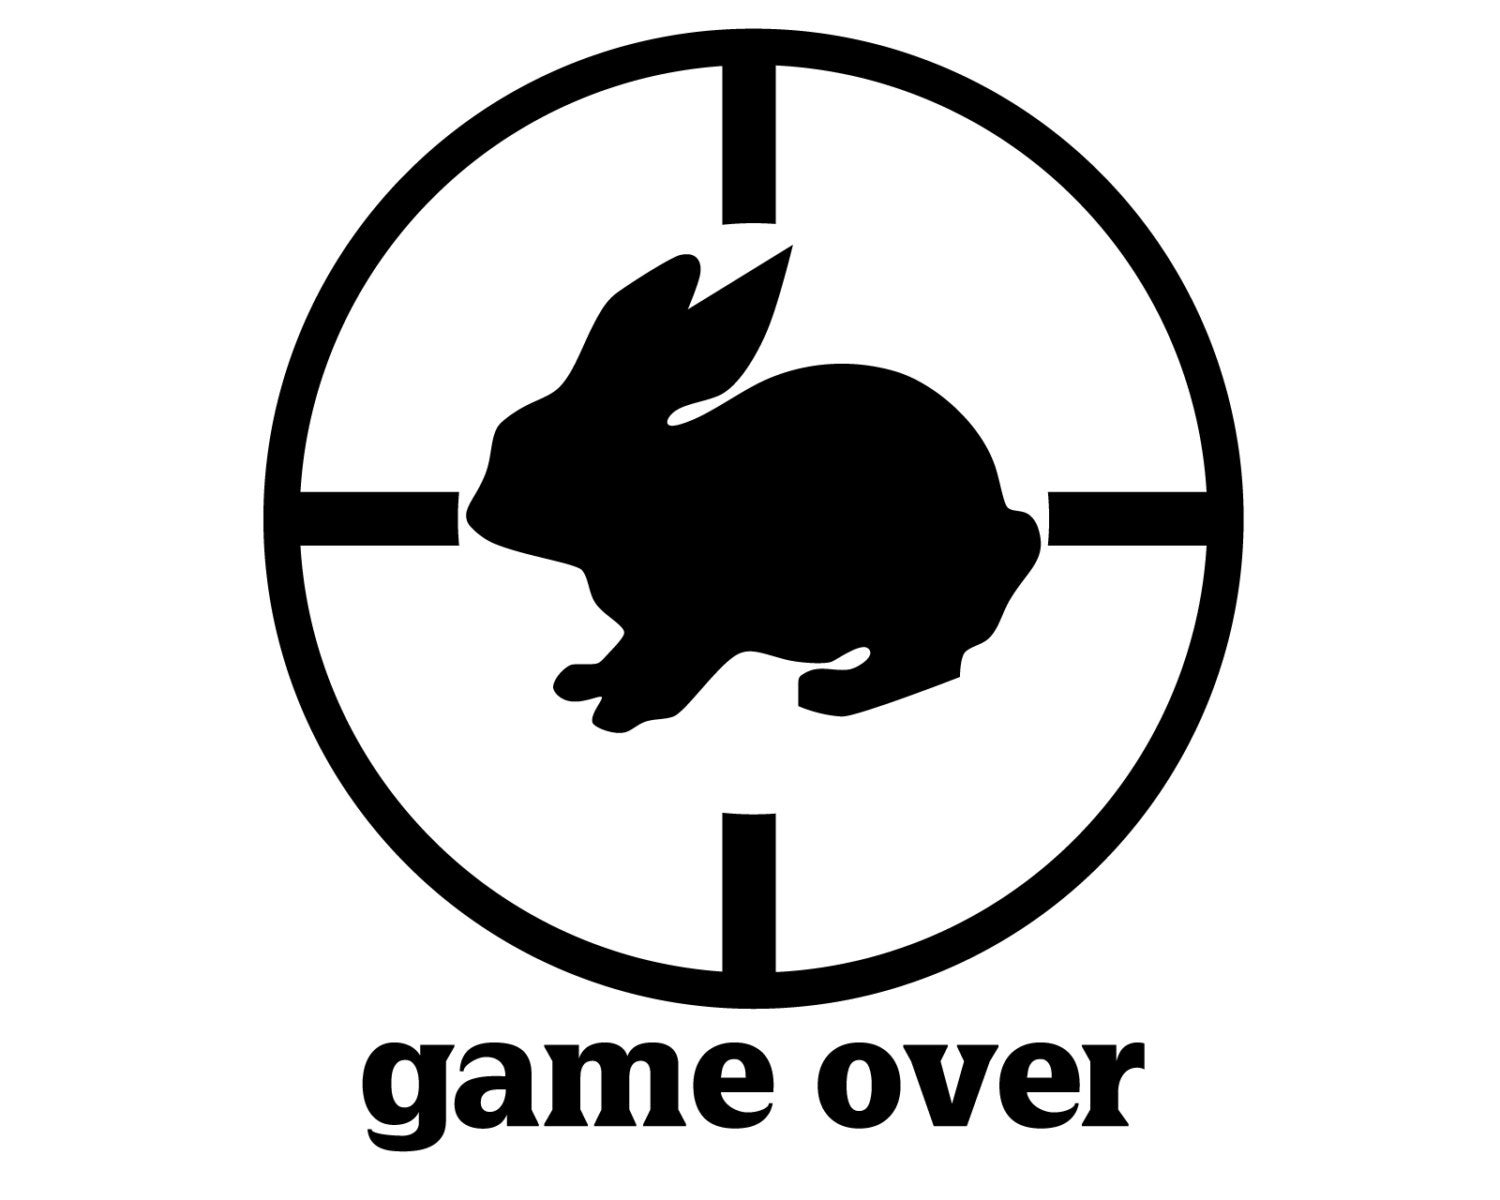 Rabbit hunter decal rabbit hunting sticker small game hunter game over decal